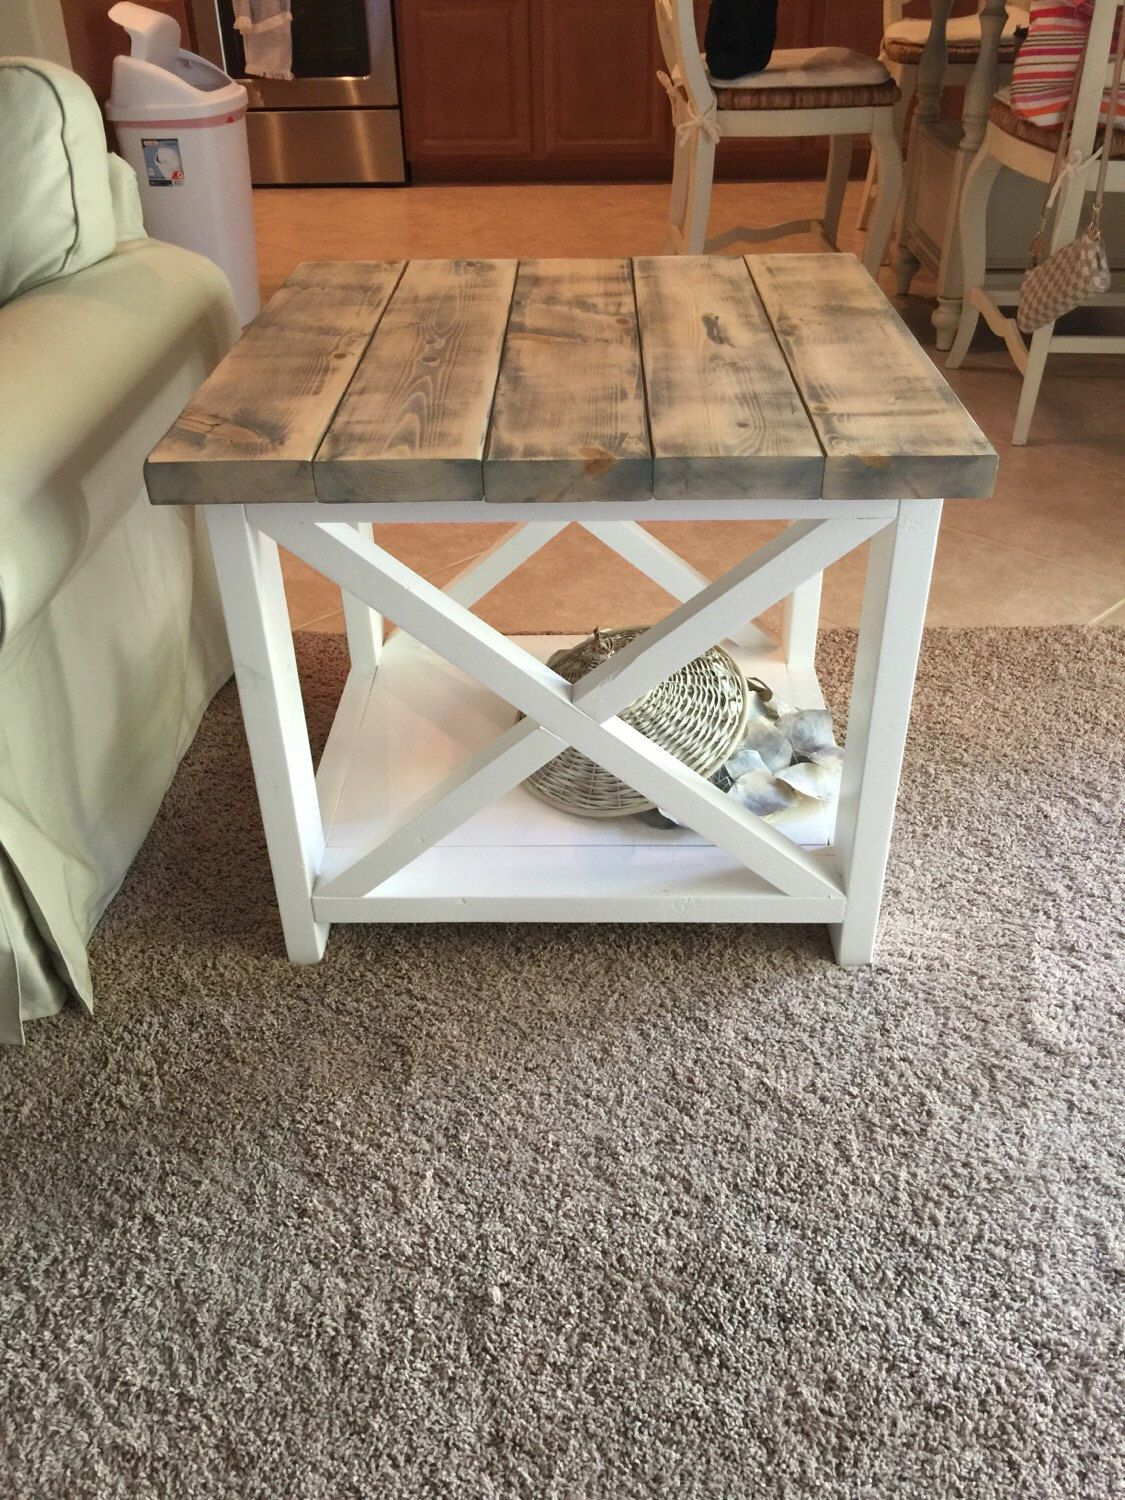 custom rustic farmhouse end table thewoodmarket etsy country white tables listing furniture for small spaces modern accent oblong tablecloth sizes bedroom lamp shades and tool